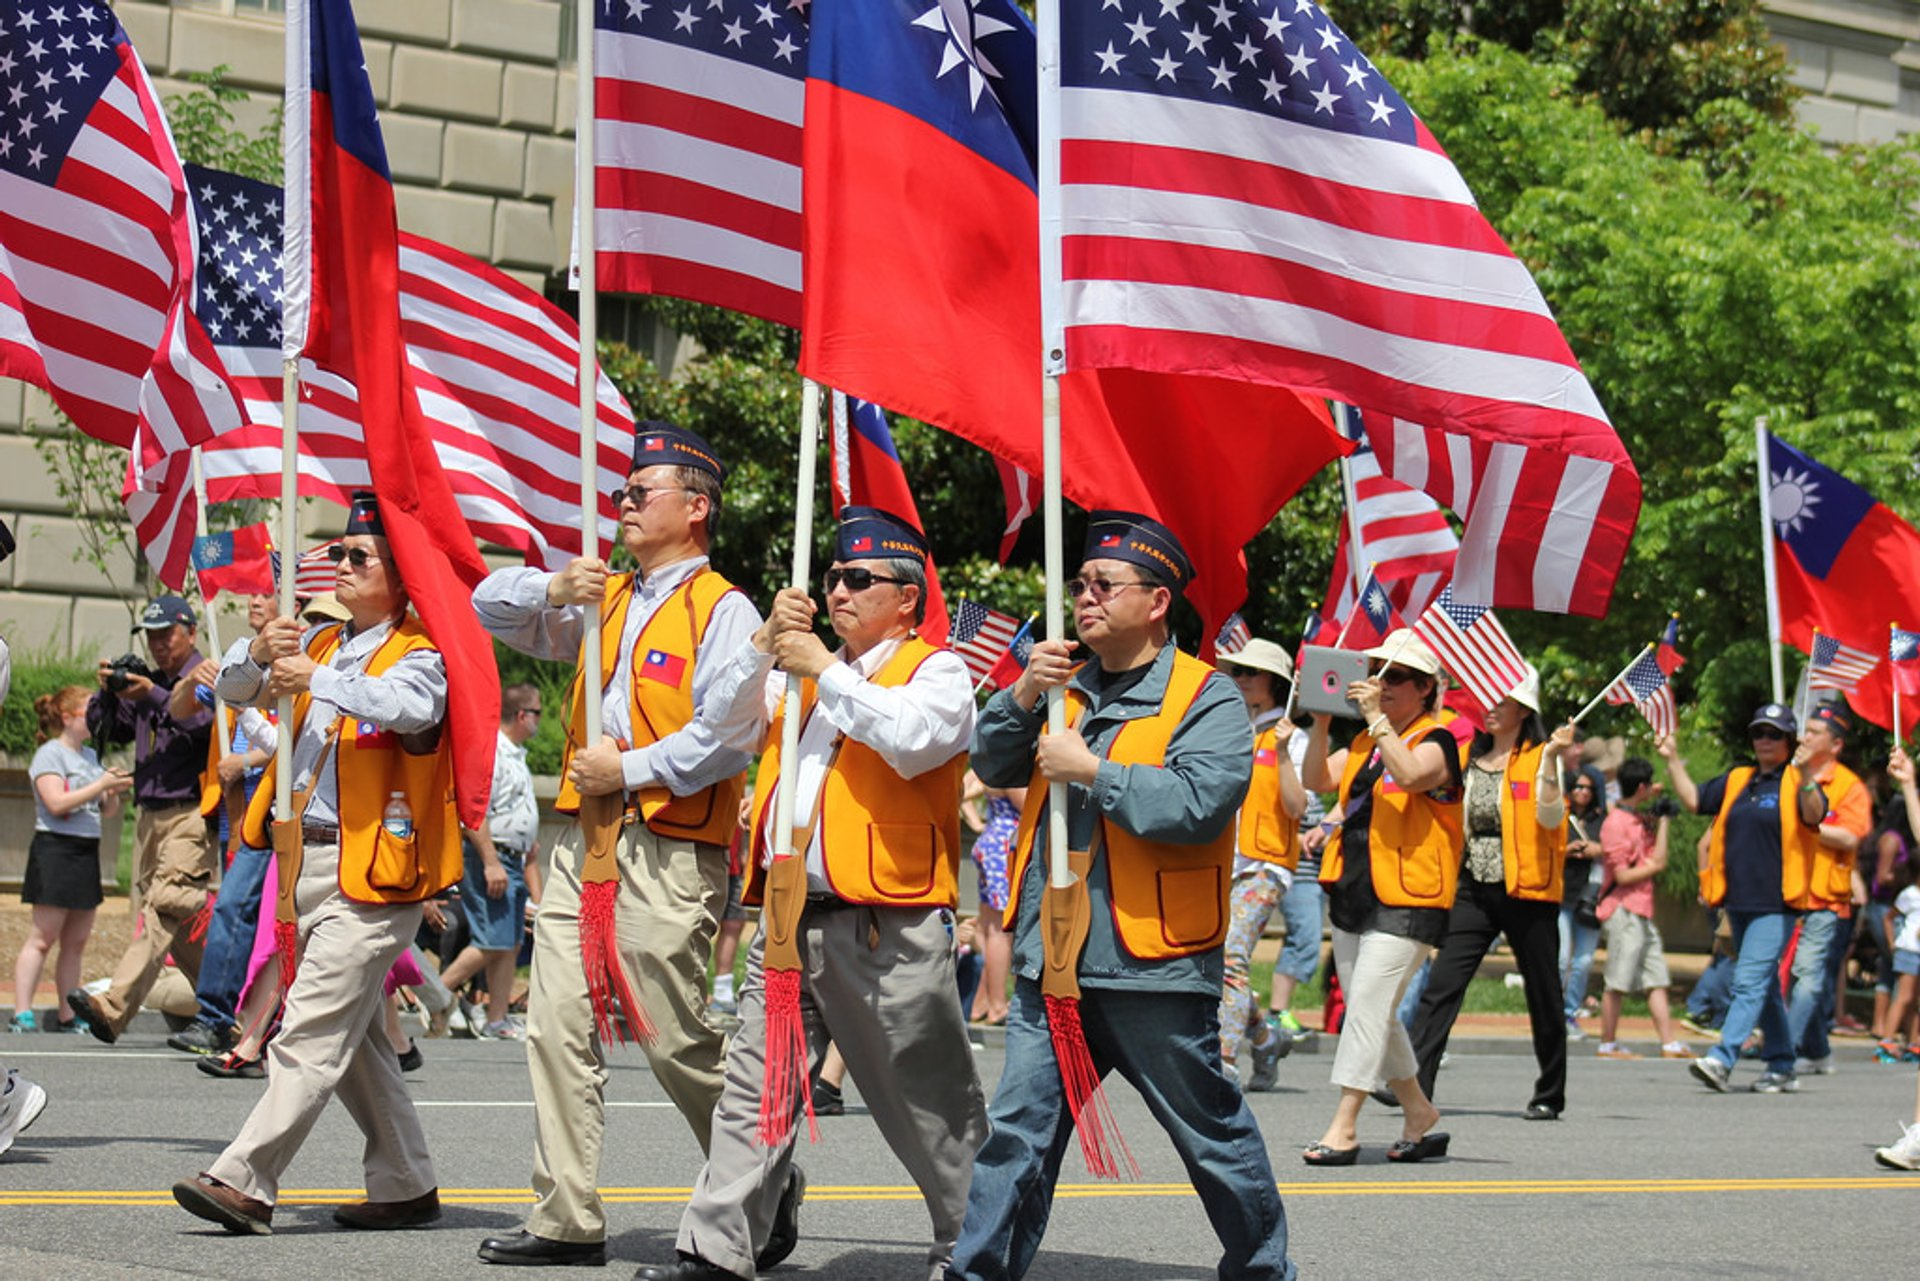 Best time for National Memorial Day Parade in Washington, D.C. 2020